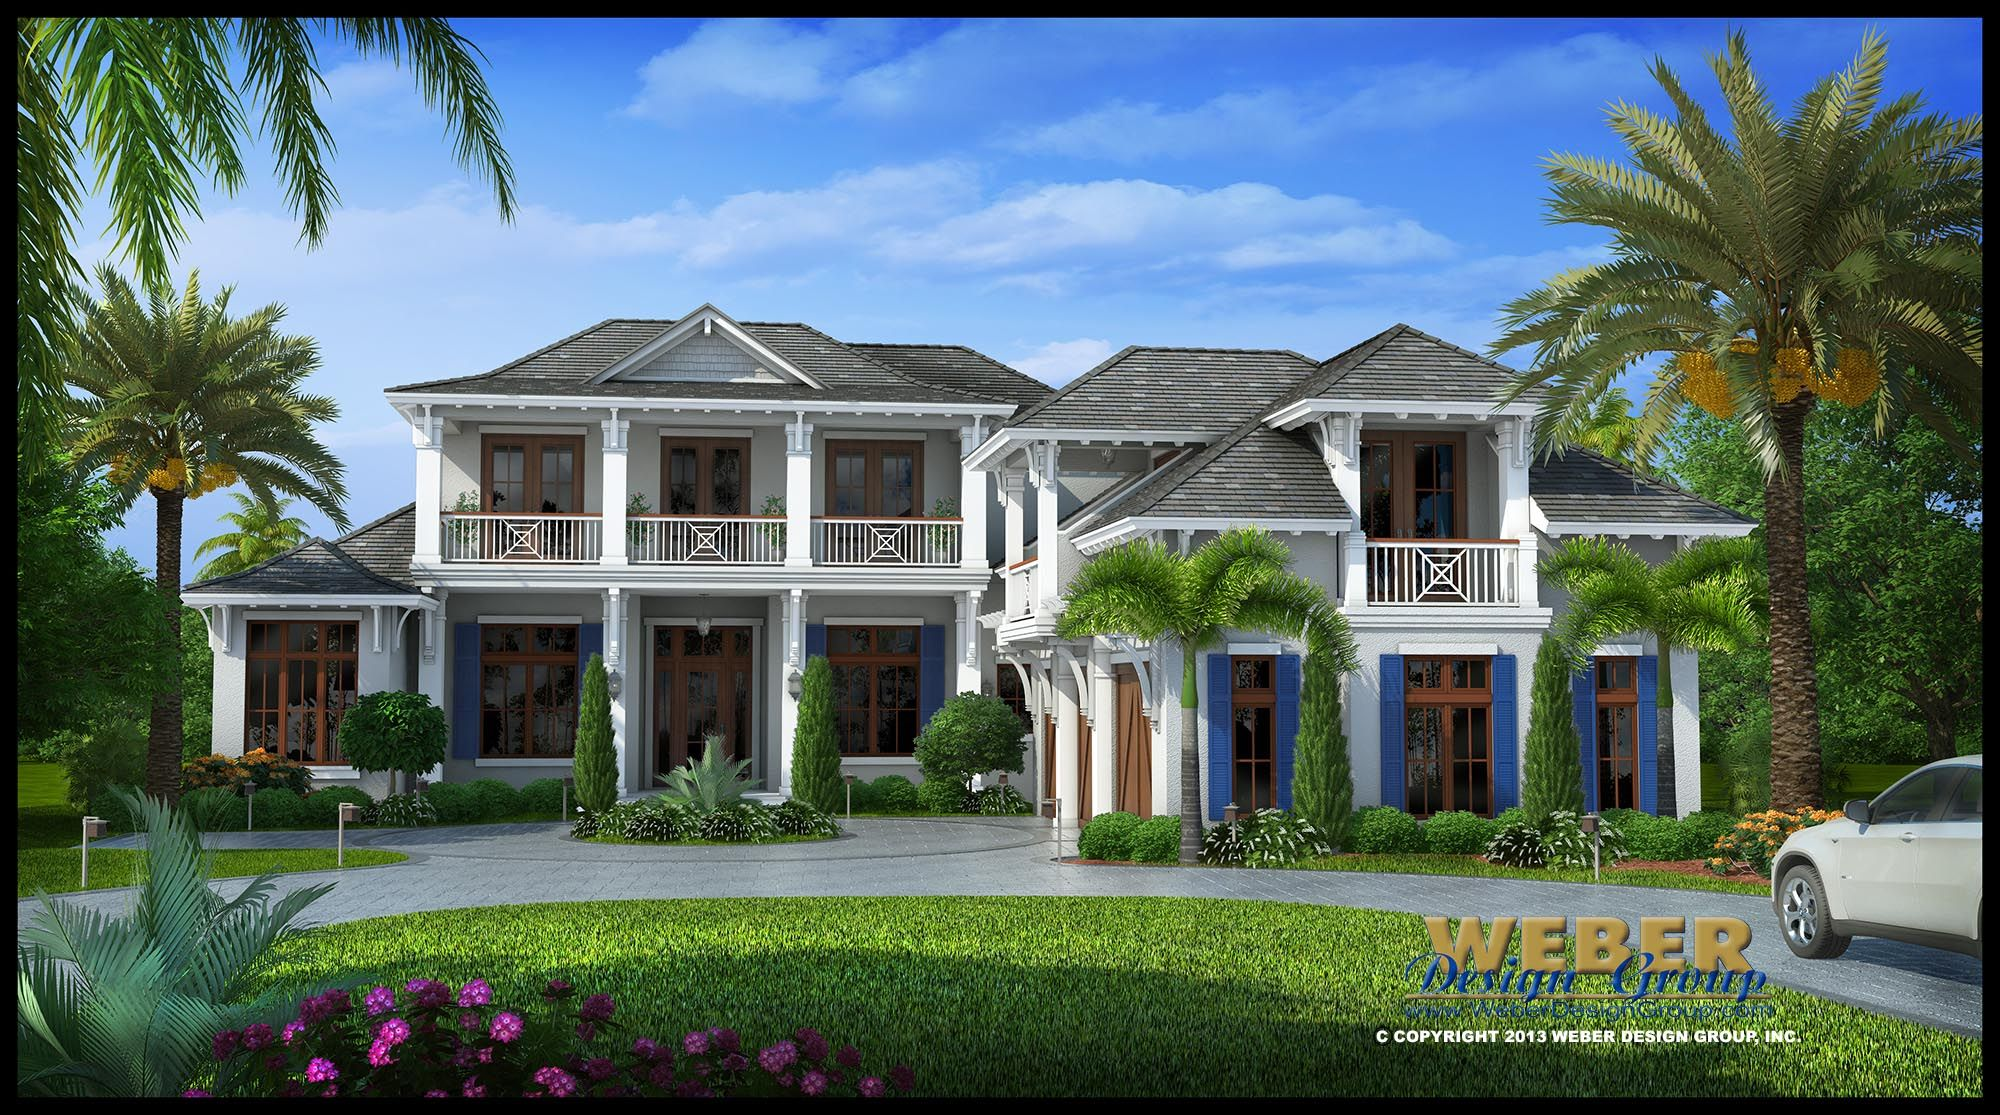 Caribbean Island Style House Plansislandhome Plans Ideas Picture Beautiful Caribbean Home Beach Style House Plans Mediterranean House Plans Mediterranean Homes